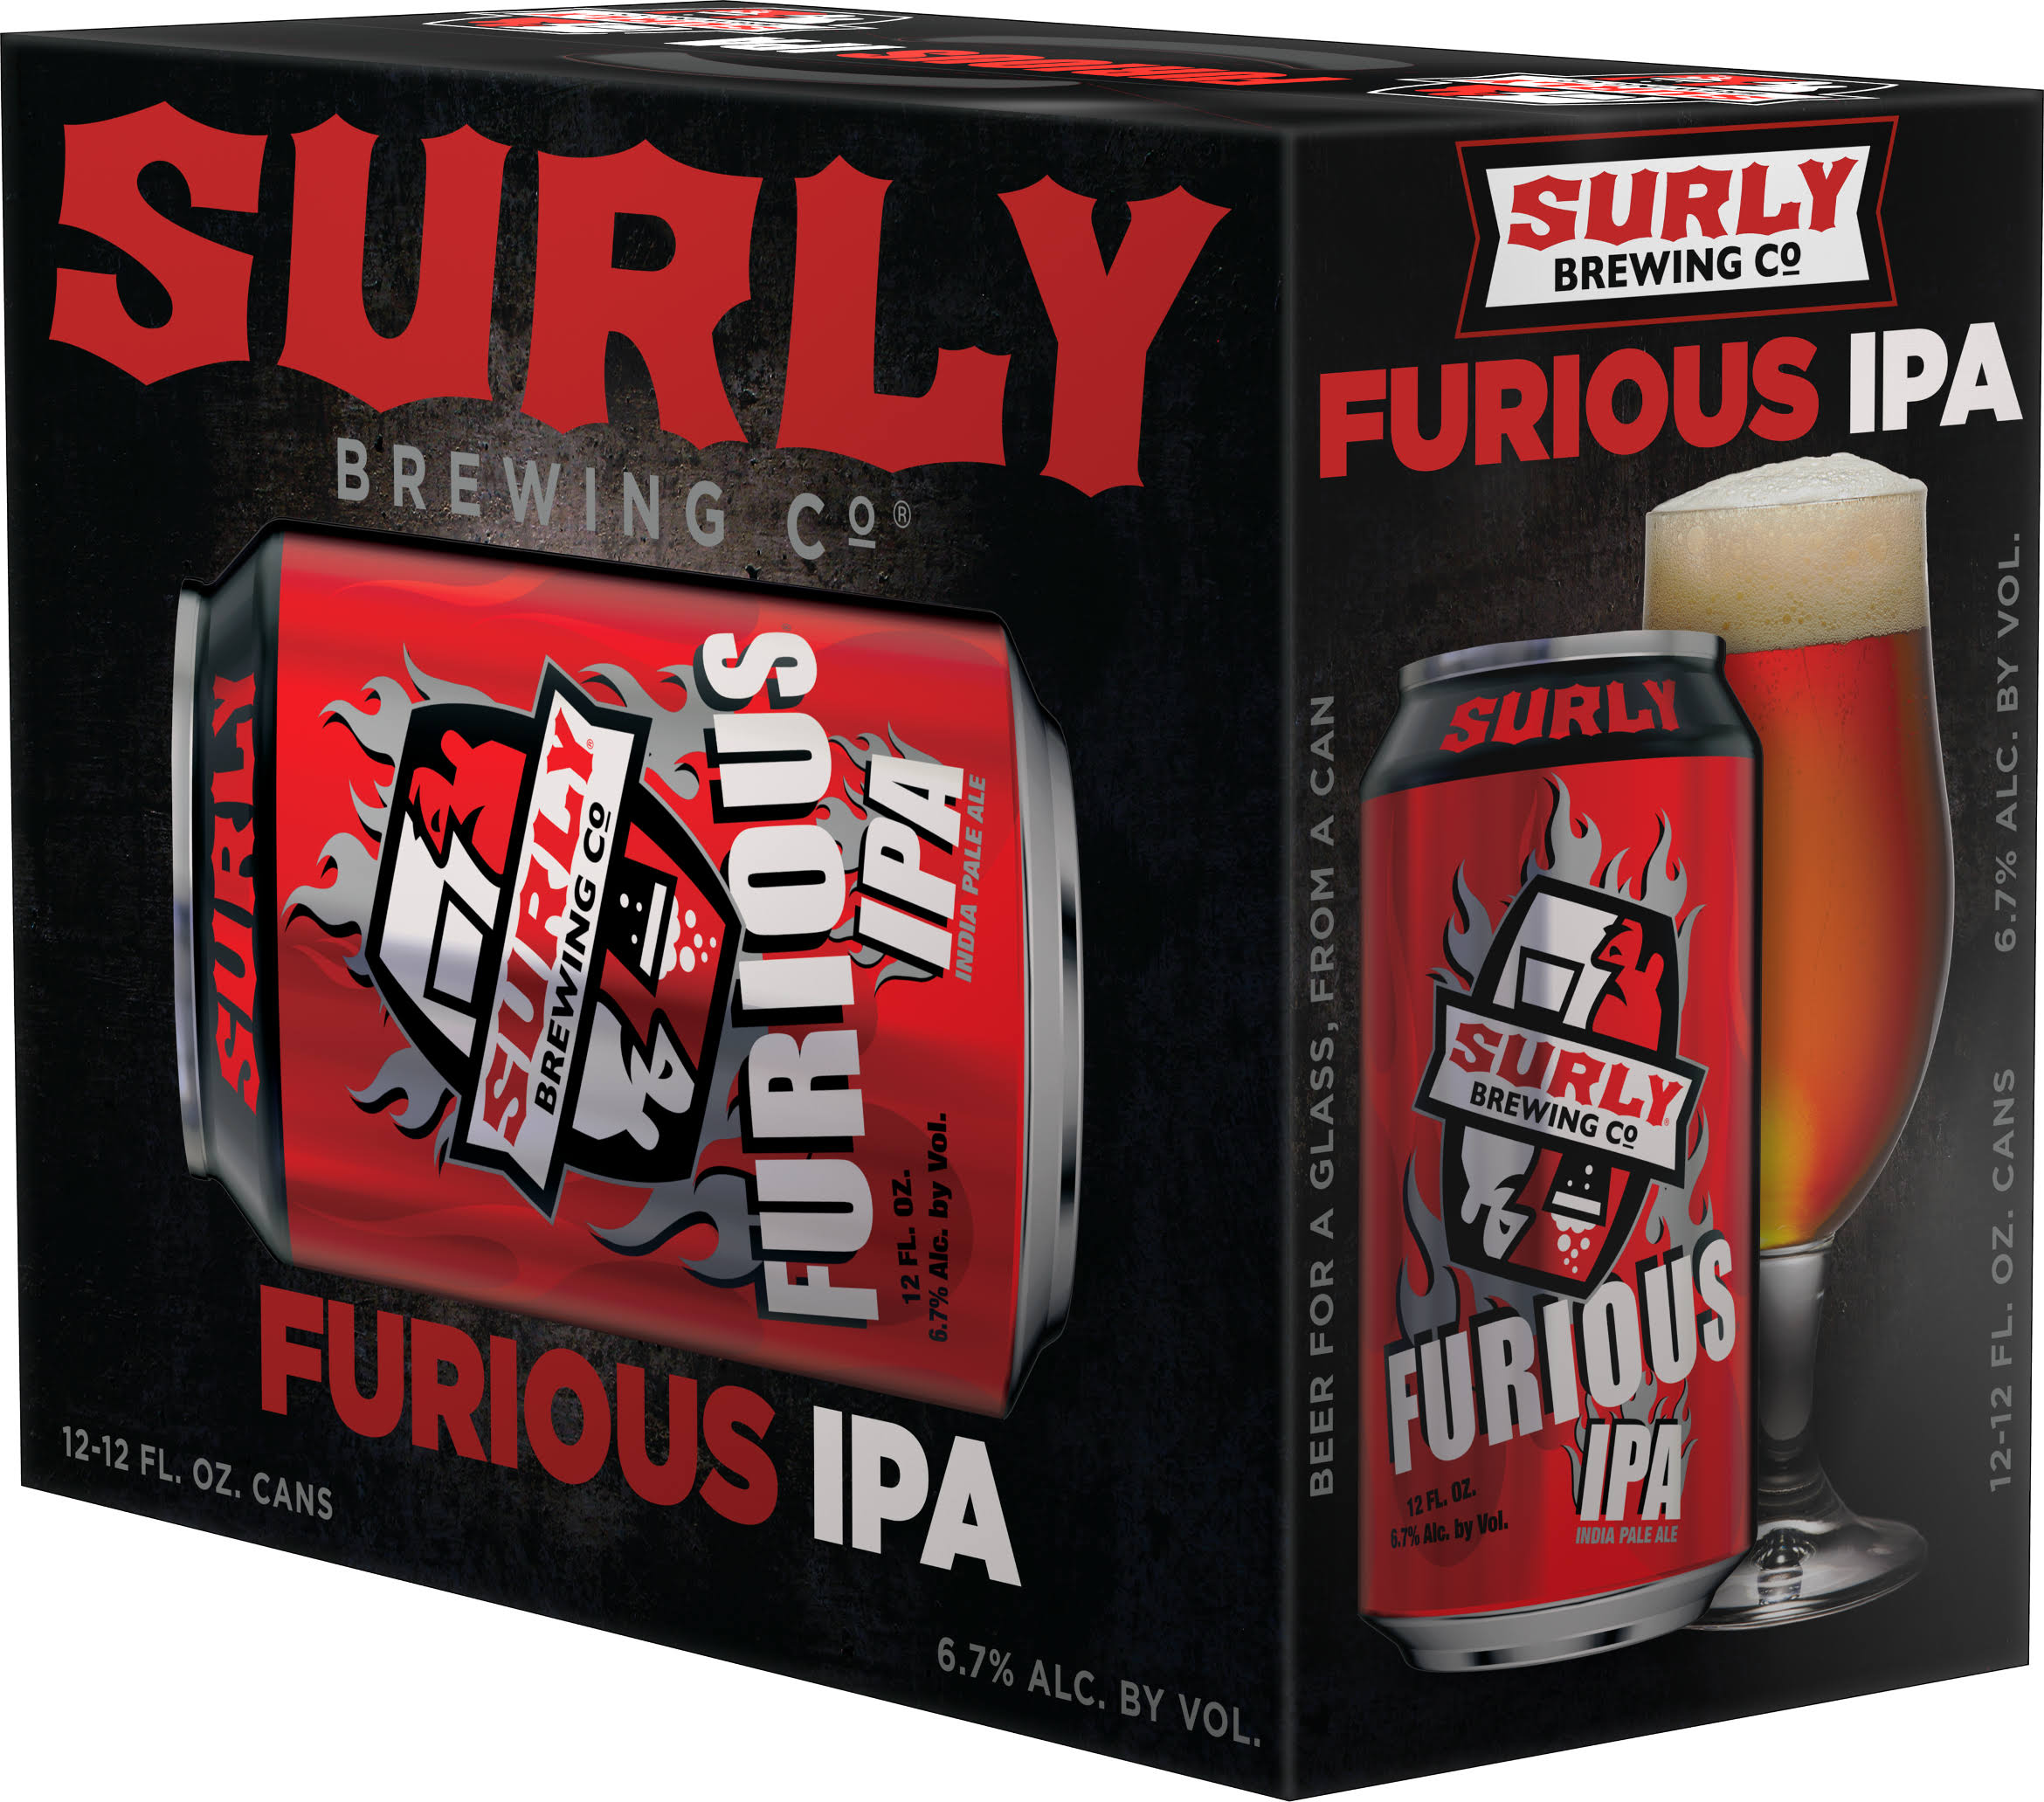 Surly Brewing Company Furious IPA - 12 fl oz